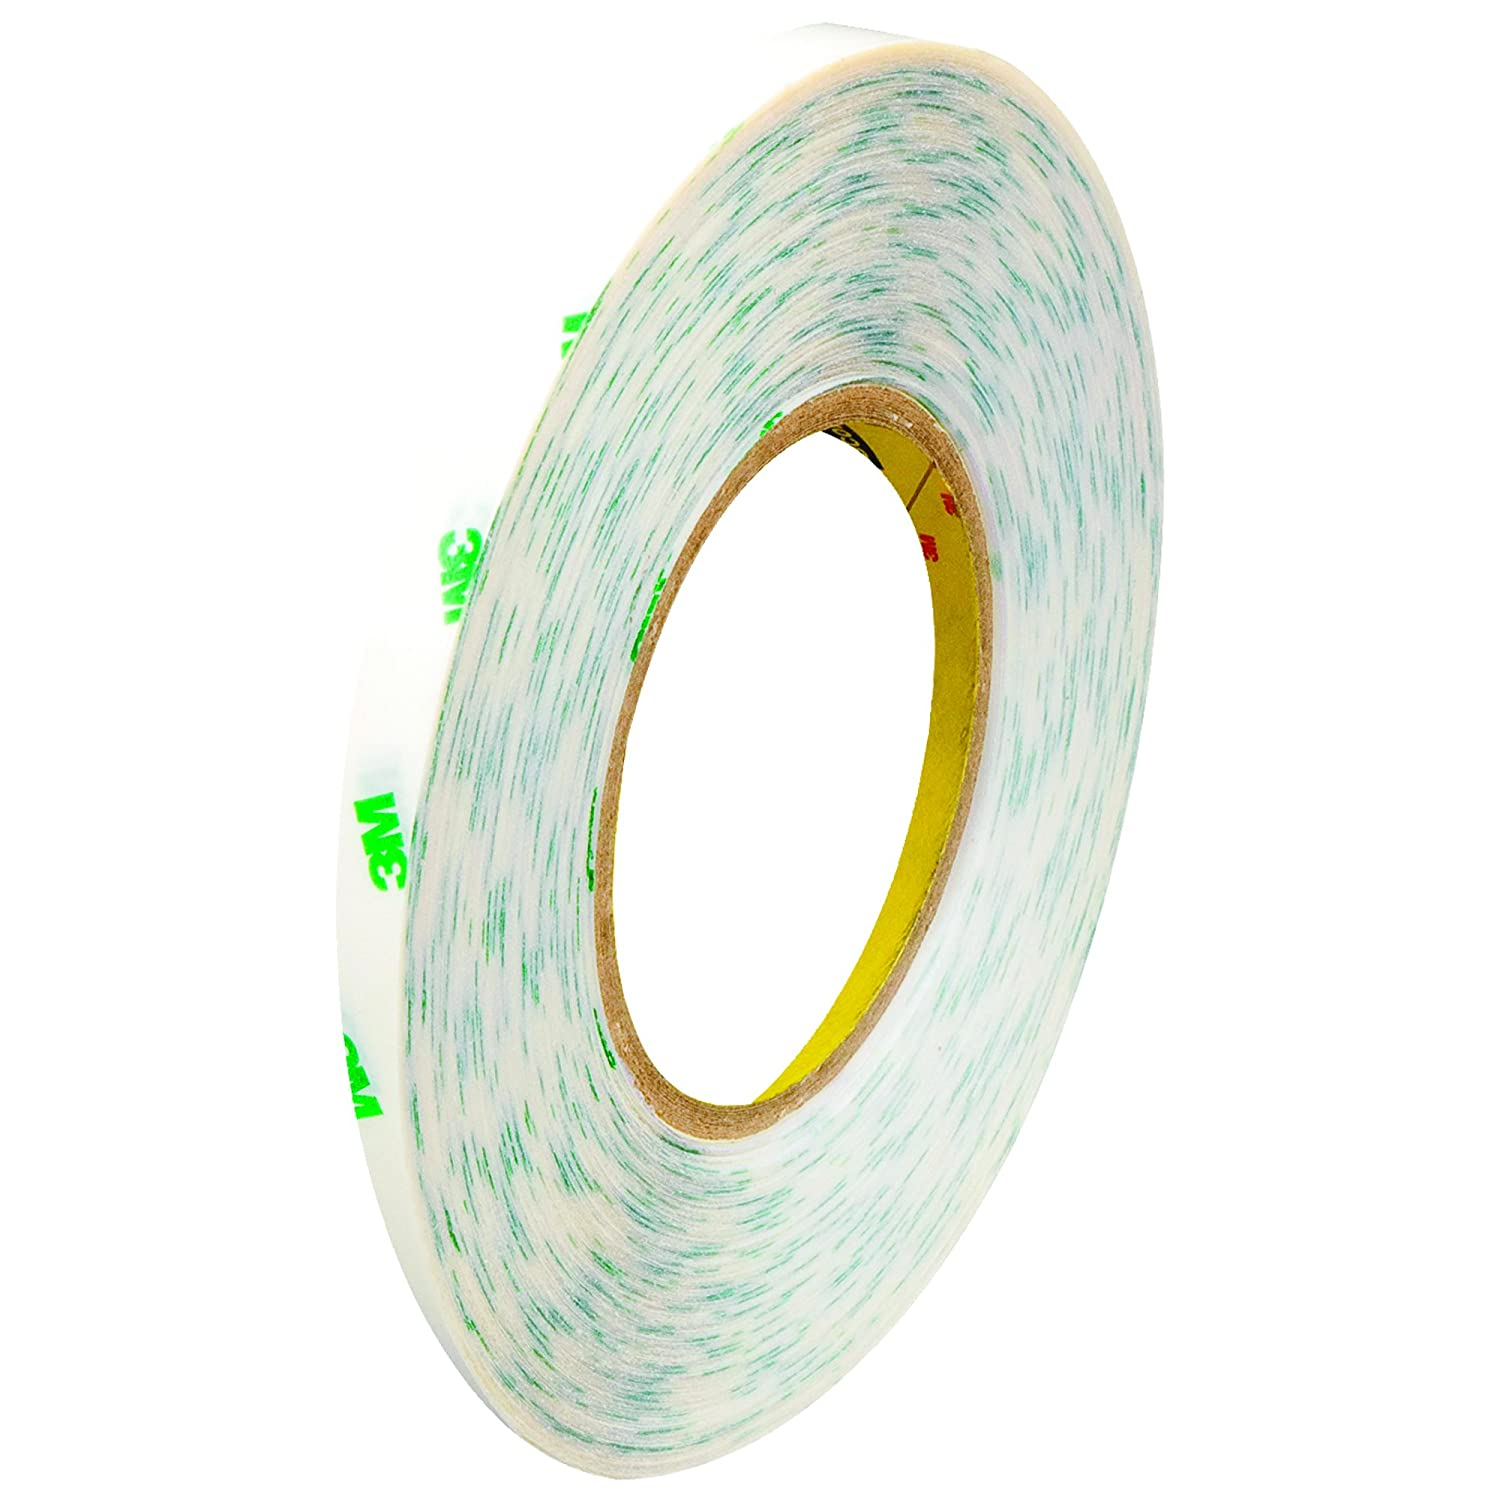 3M 9082 Adhesive Transfer Tape Clear 1//4 x 60 yds 2.0 Mil 3M Stock# 7010374598 Hand Rolls 6//Case